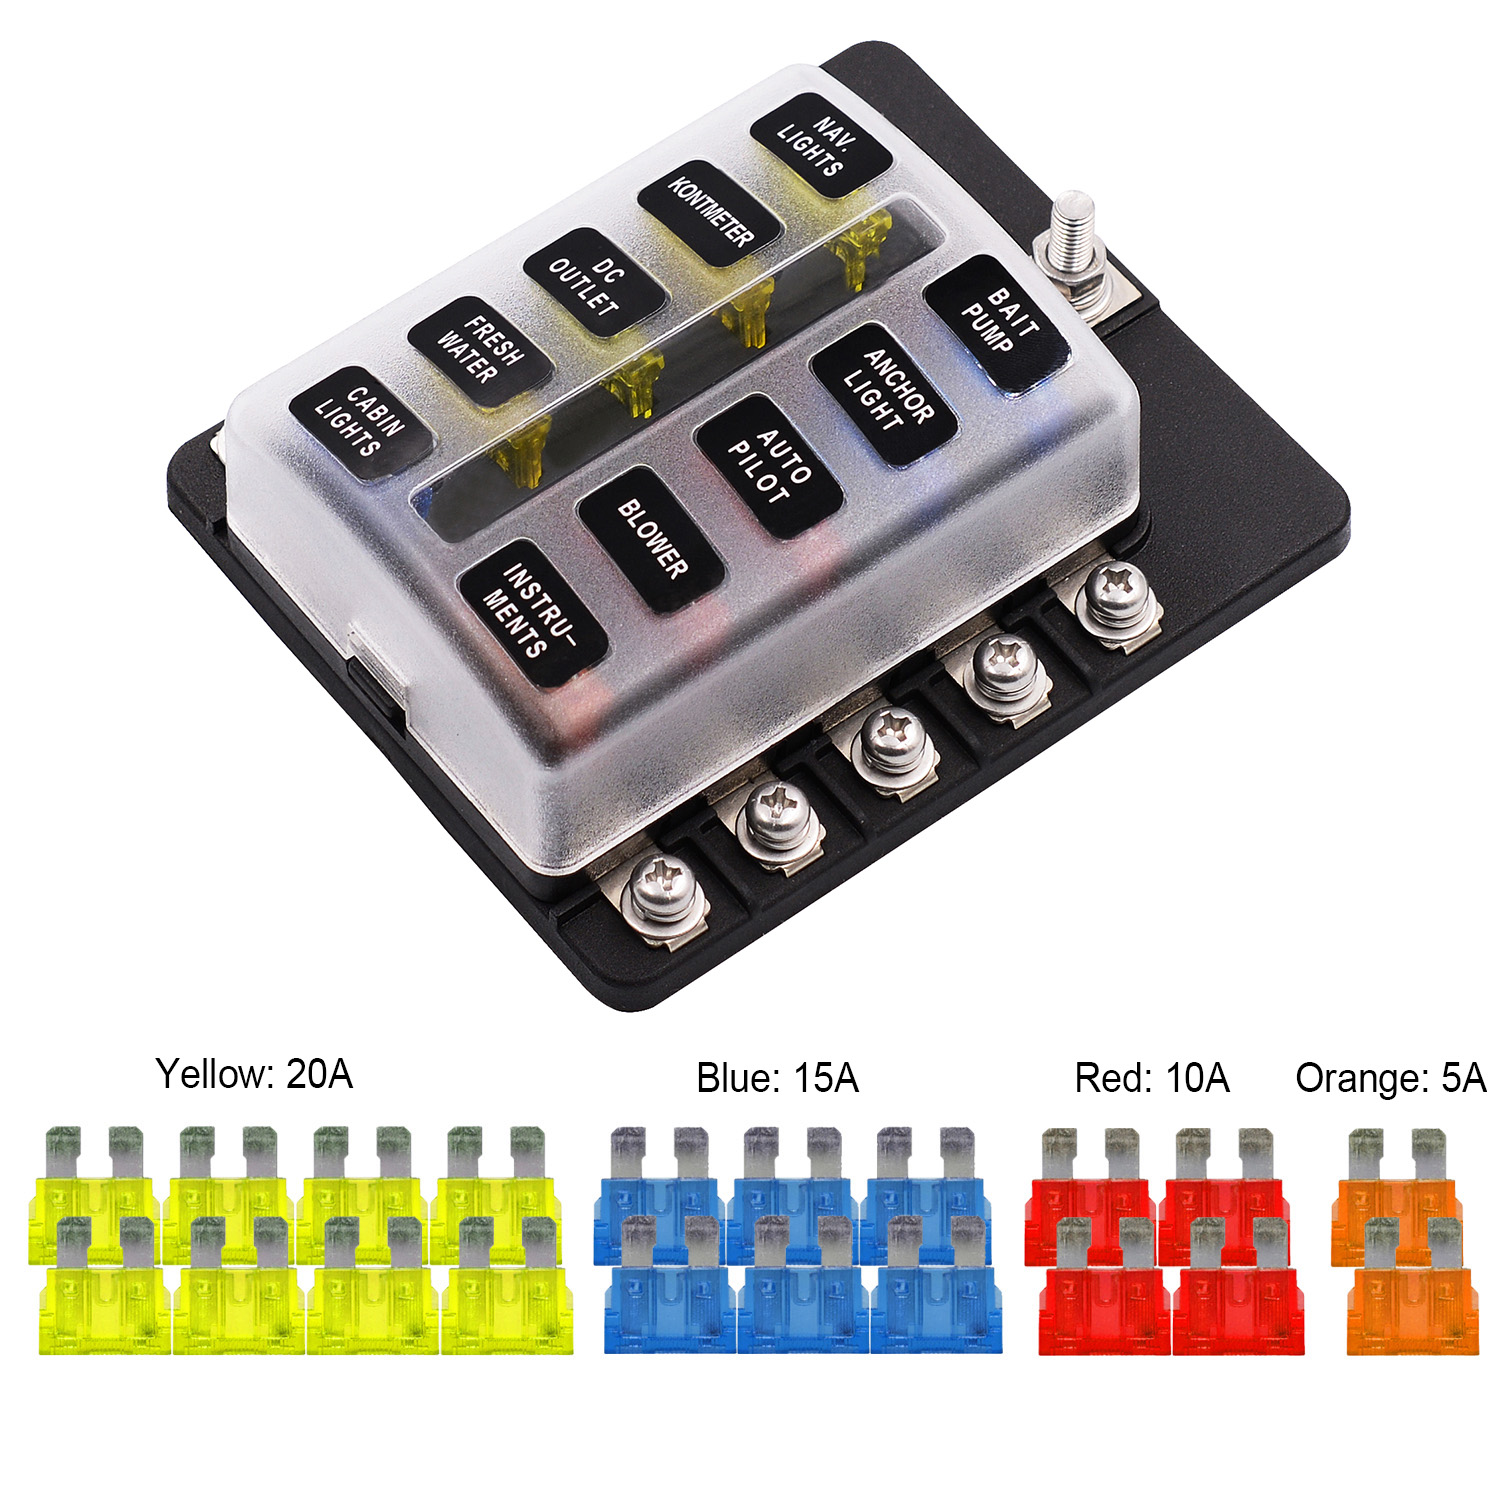 Automotive 10 Way Circuit Car Fuse Box Waterproof 32V Screw Terminal Fuse Box Block Red LED Indicates 5A 10A 15A 20A Auto Holder